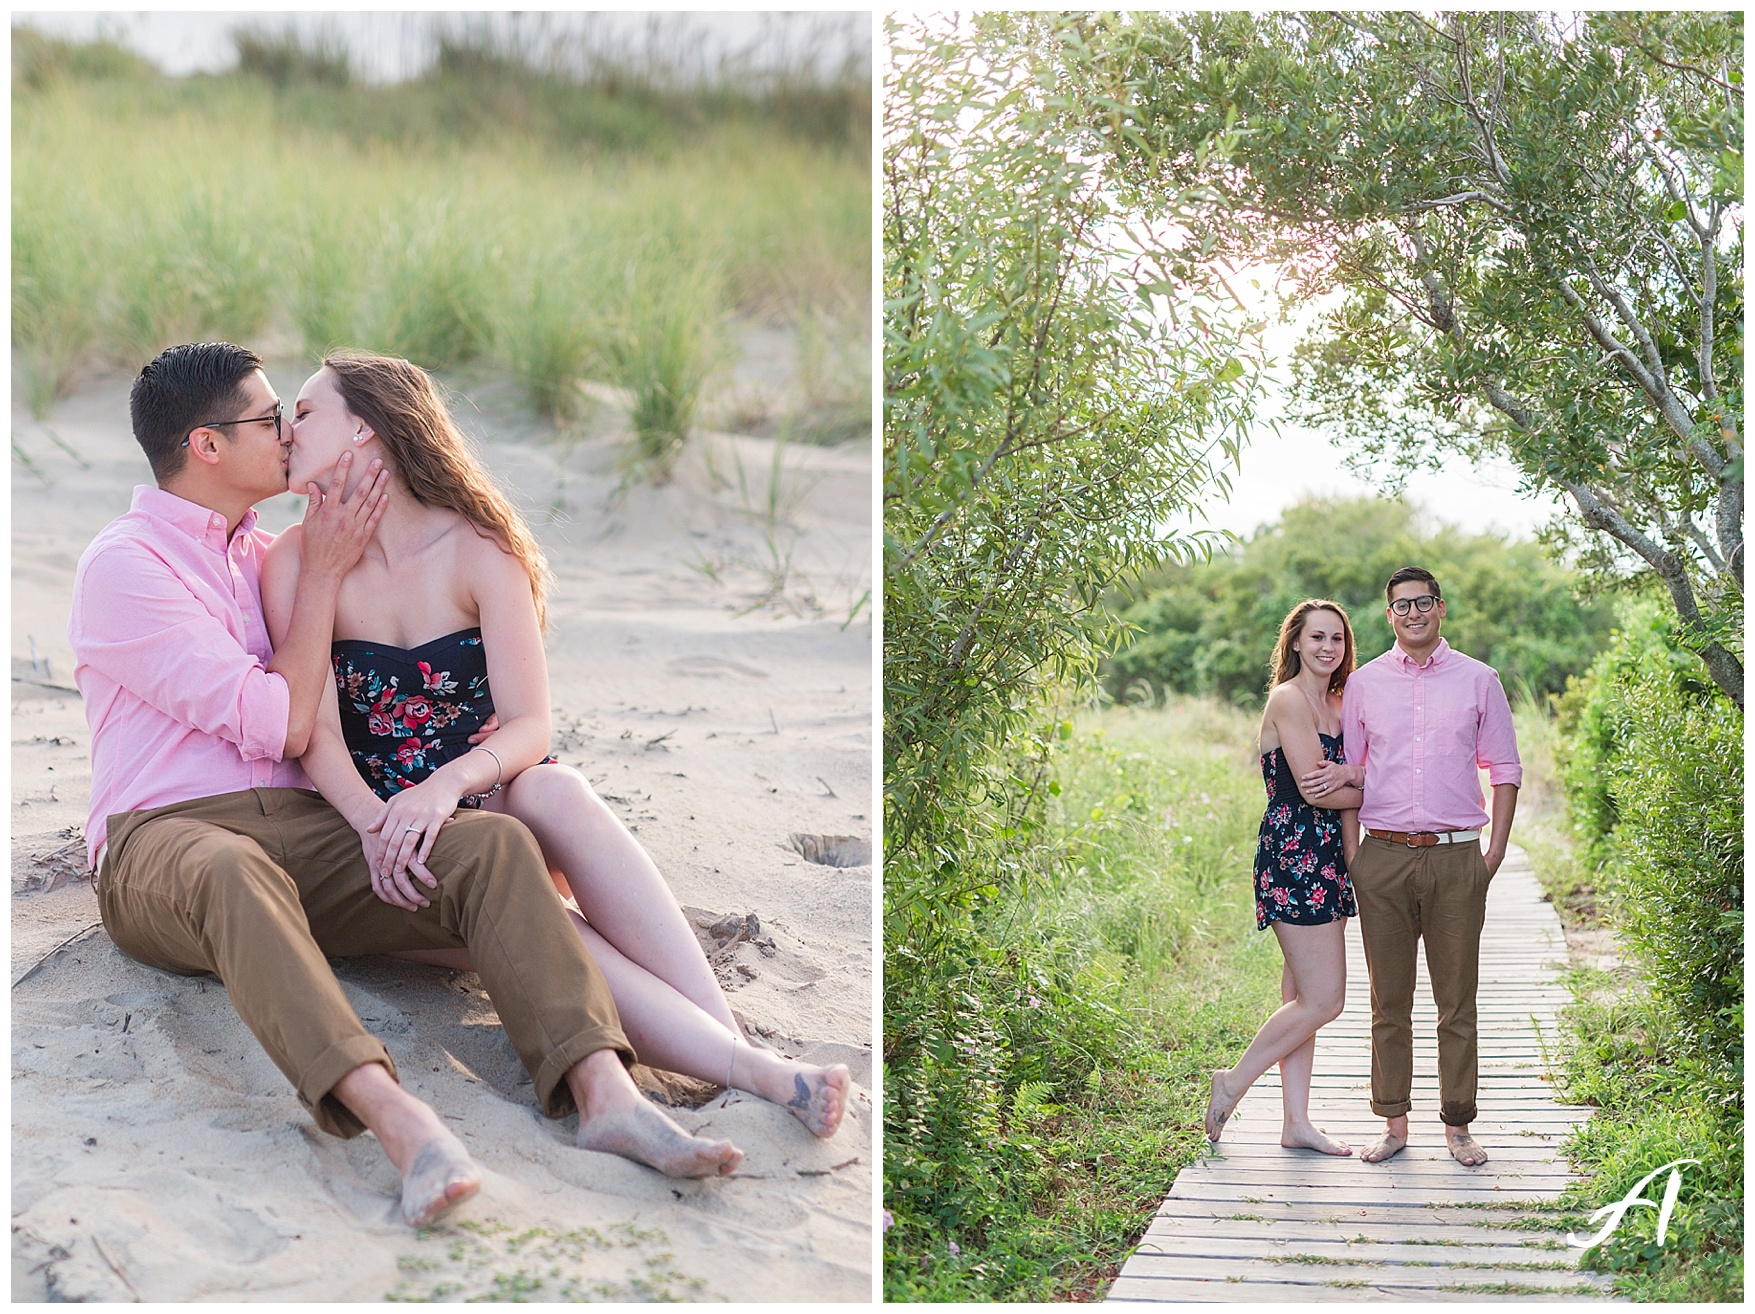 Virginia Beach Engagement Session at Back Bay || Central Virginia Wedding and Portrait Photographer || www.ashleyeiban.com